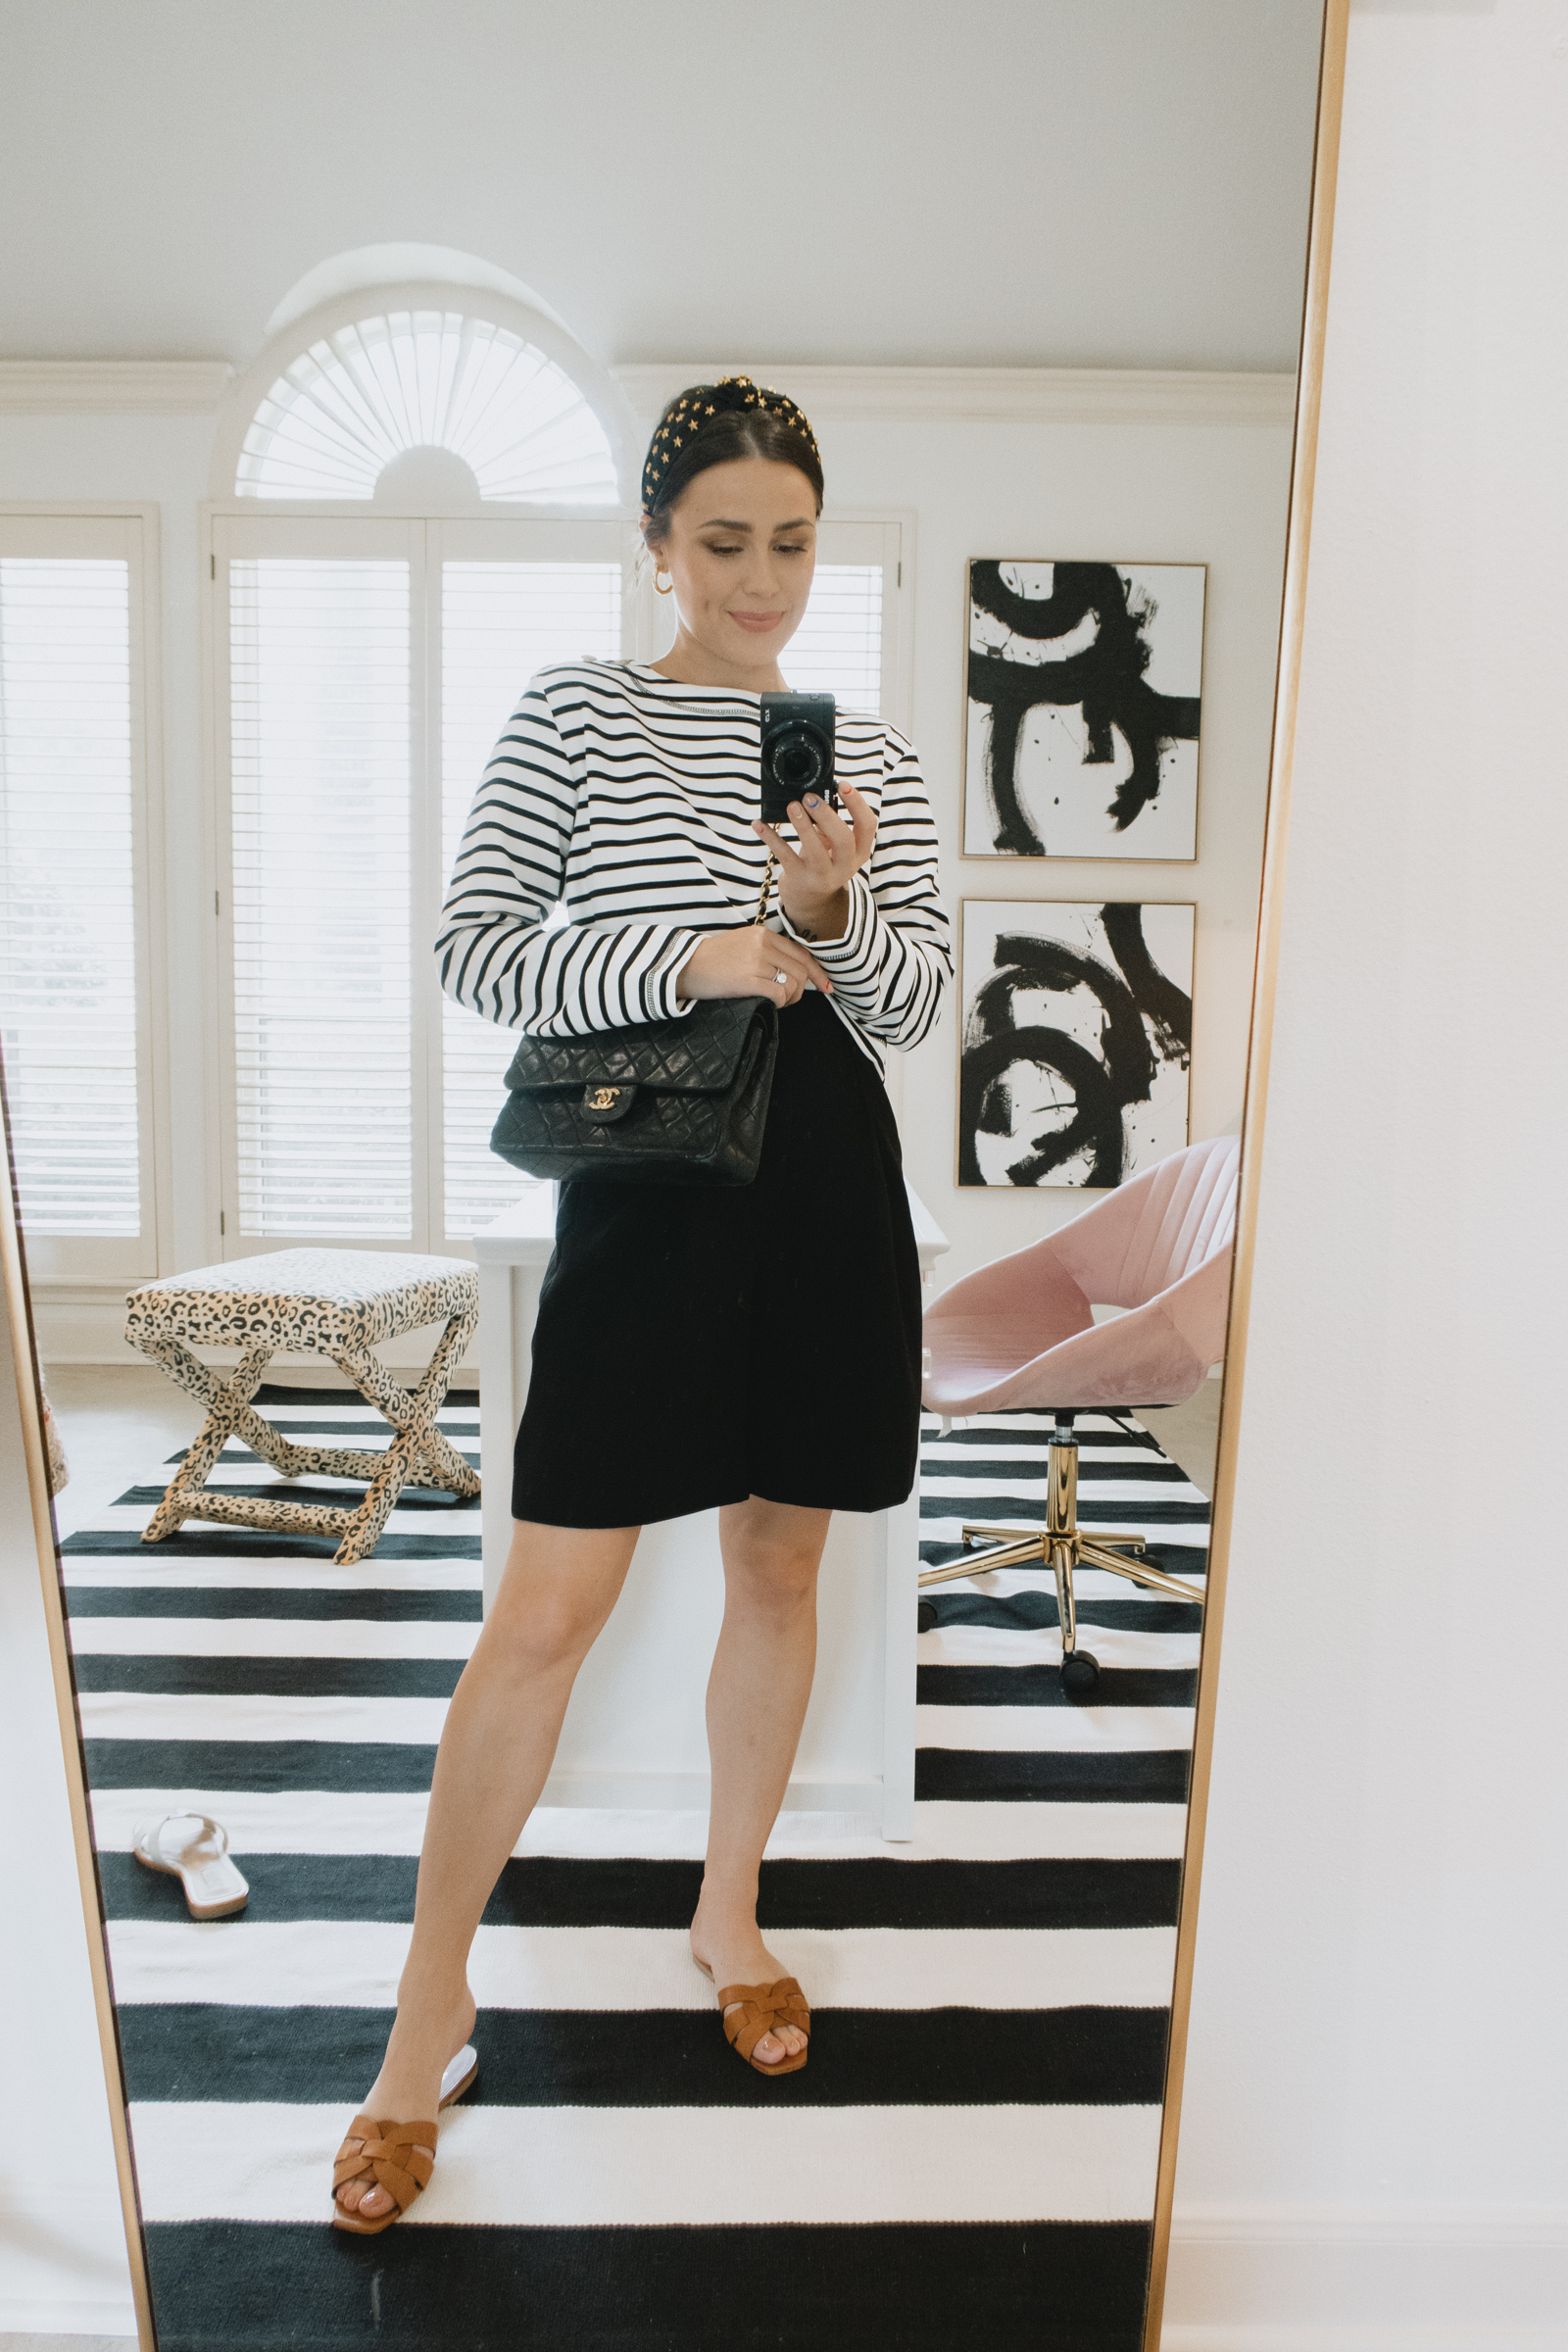 Elly Brown wears bermuda shorts with a stripped tee and brown YSL slides